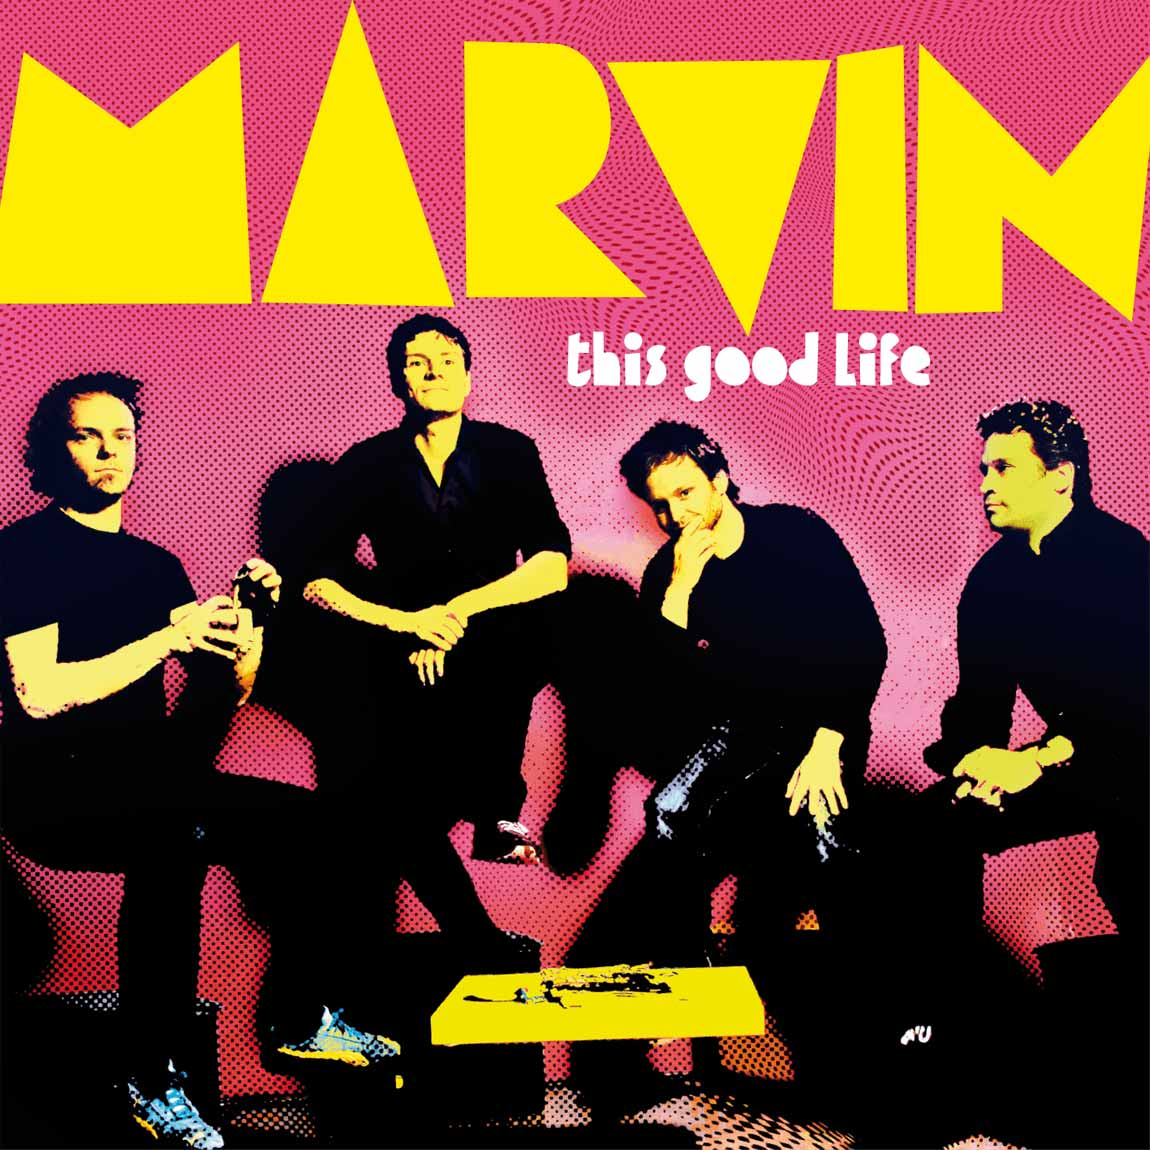 Marvin This Good Life LP Cover Variante